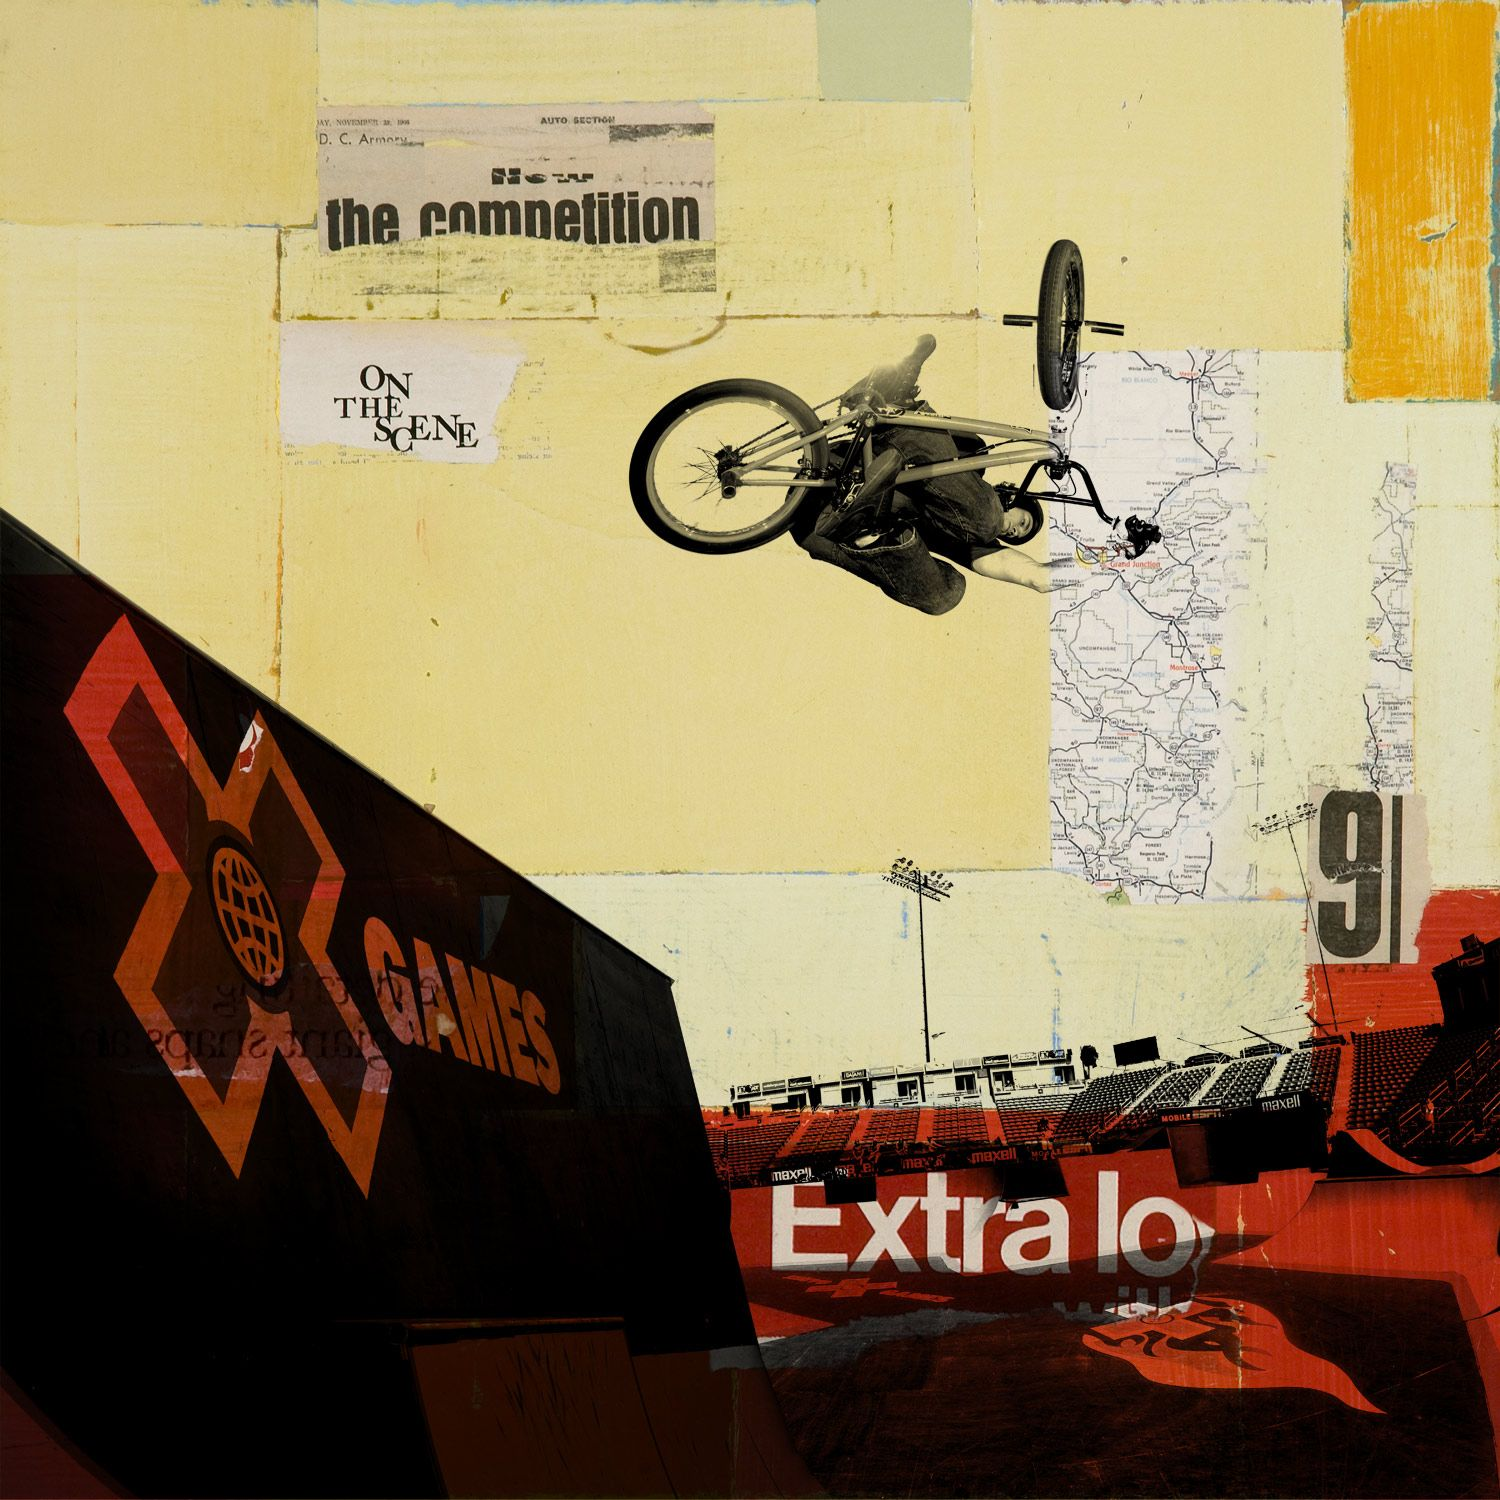 ESPN X Games Paintings by Robert Mars | Robert Mars | Pinterest ...